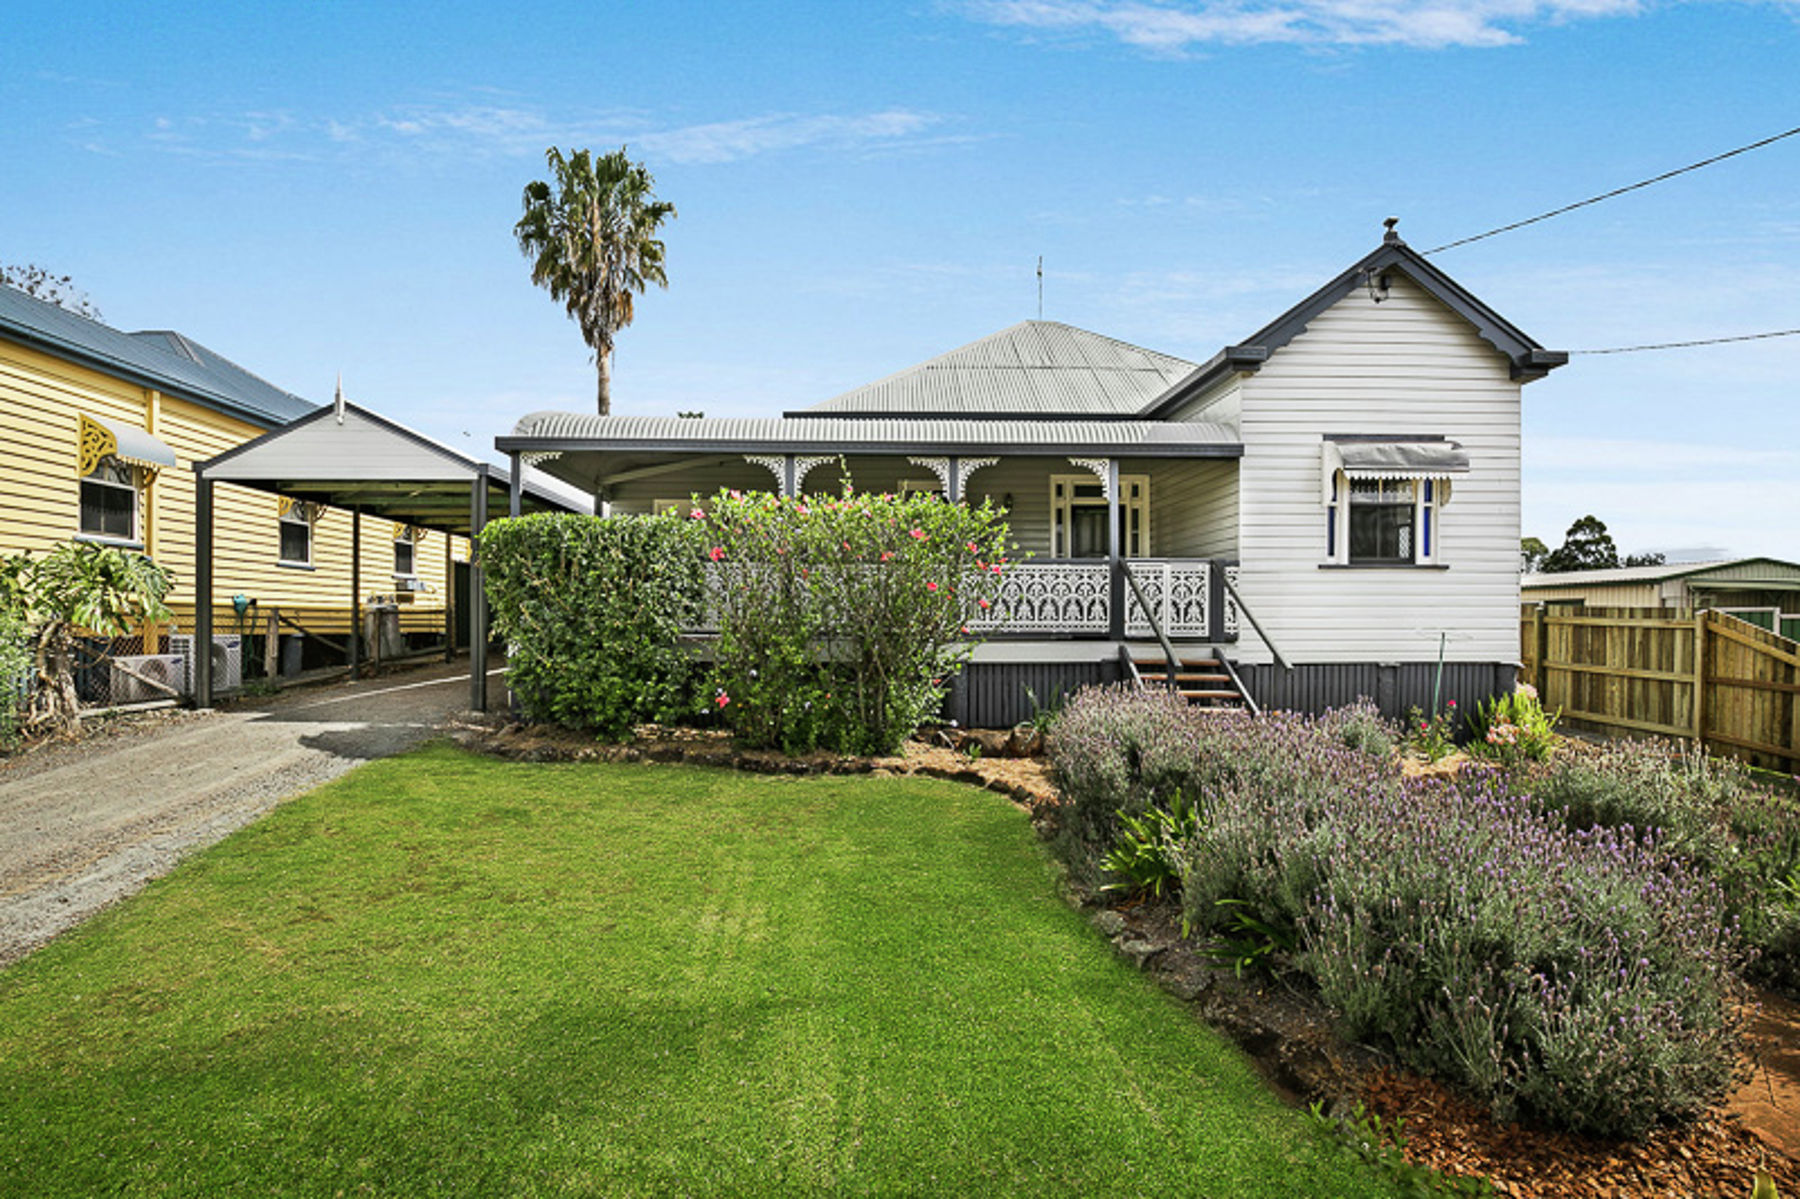 208 South Street, SOUTH TOOWOOMBA QLD 4350 - Property